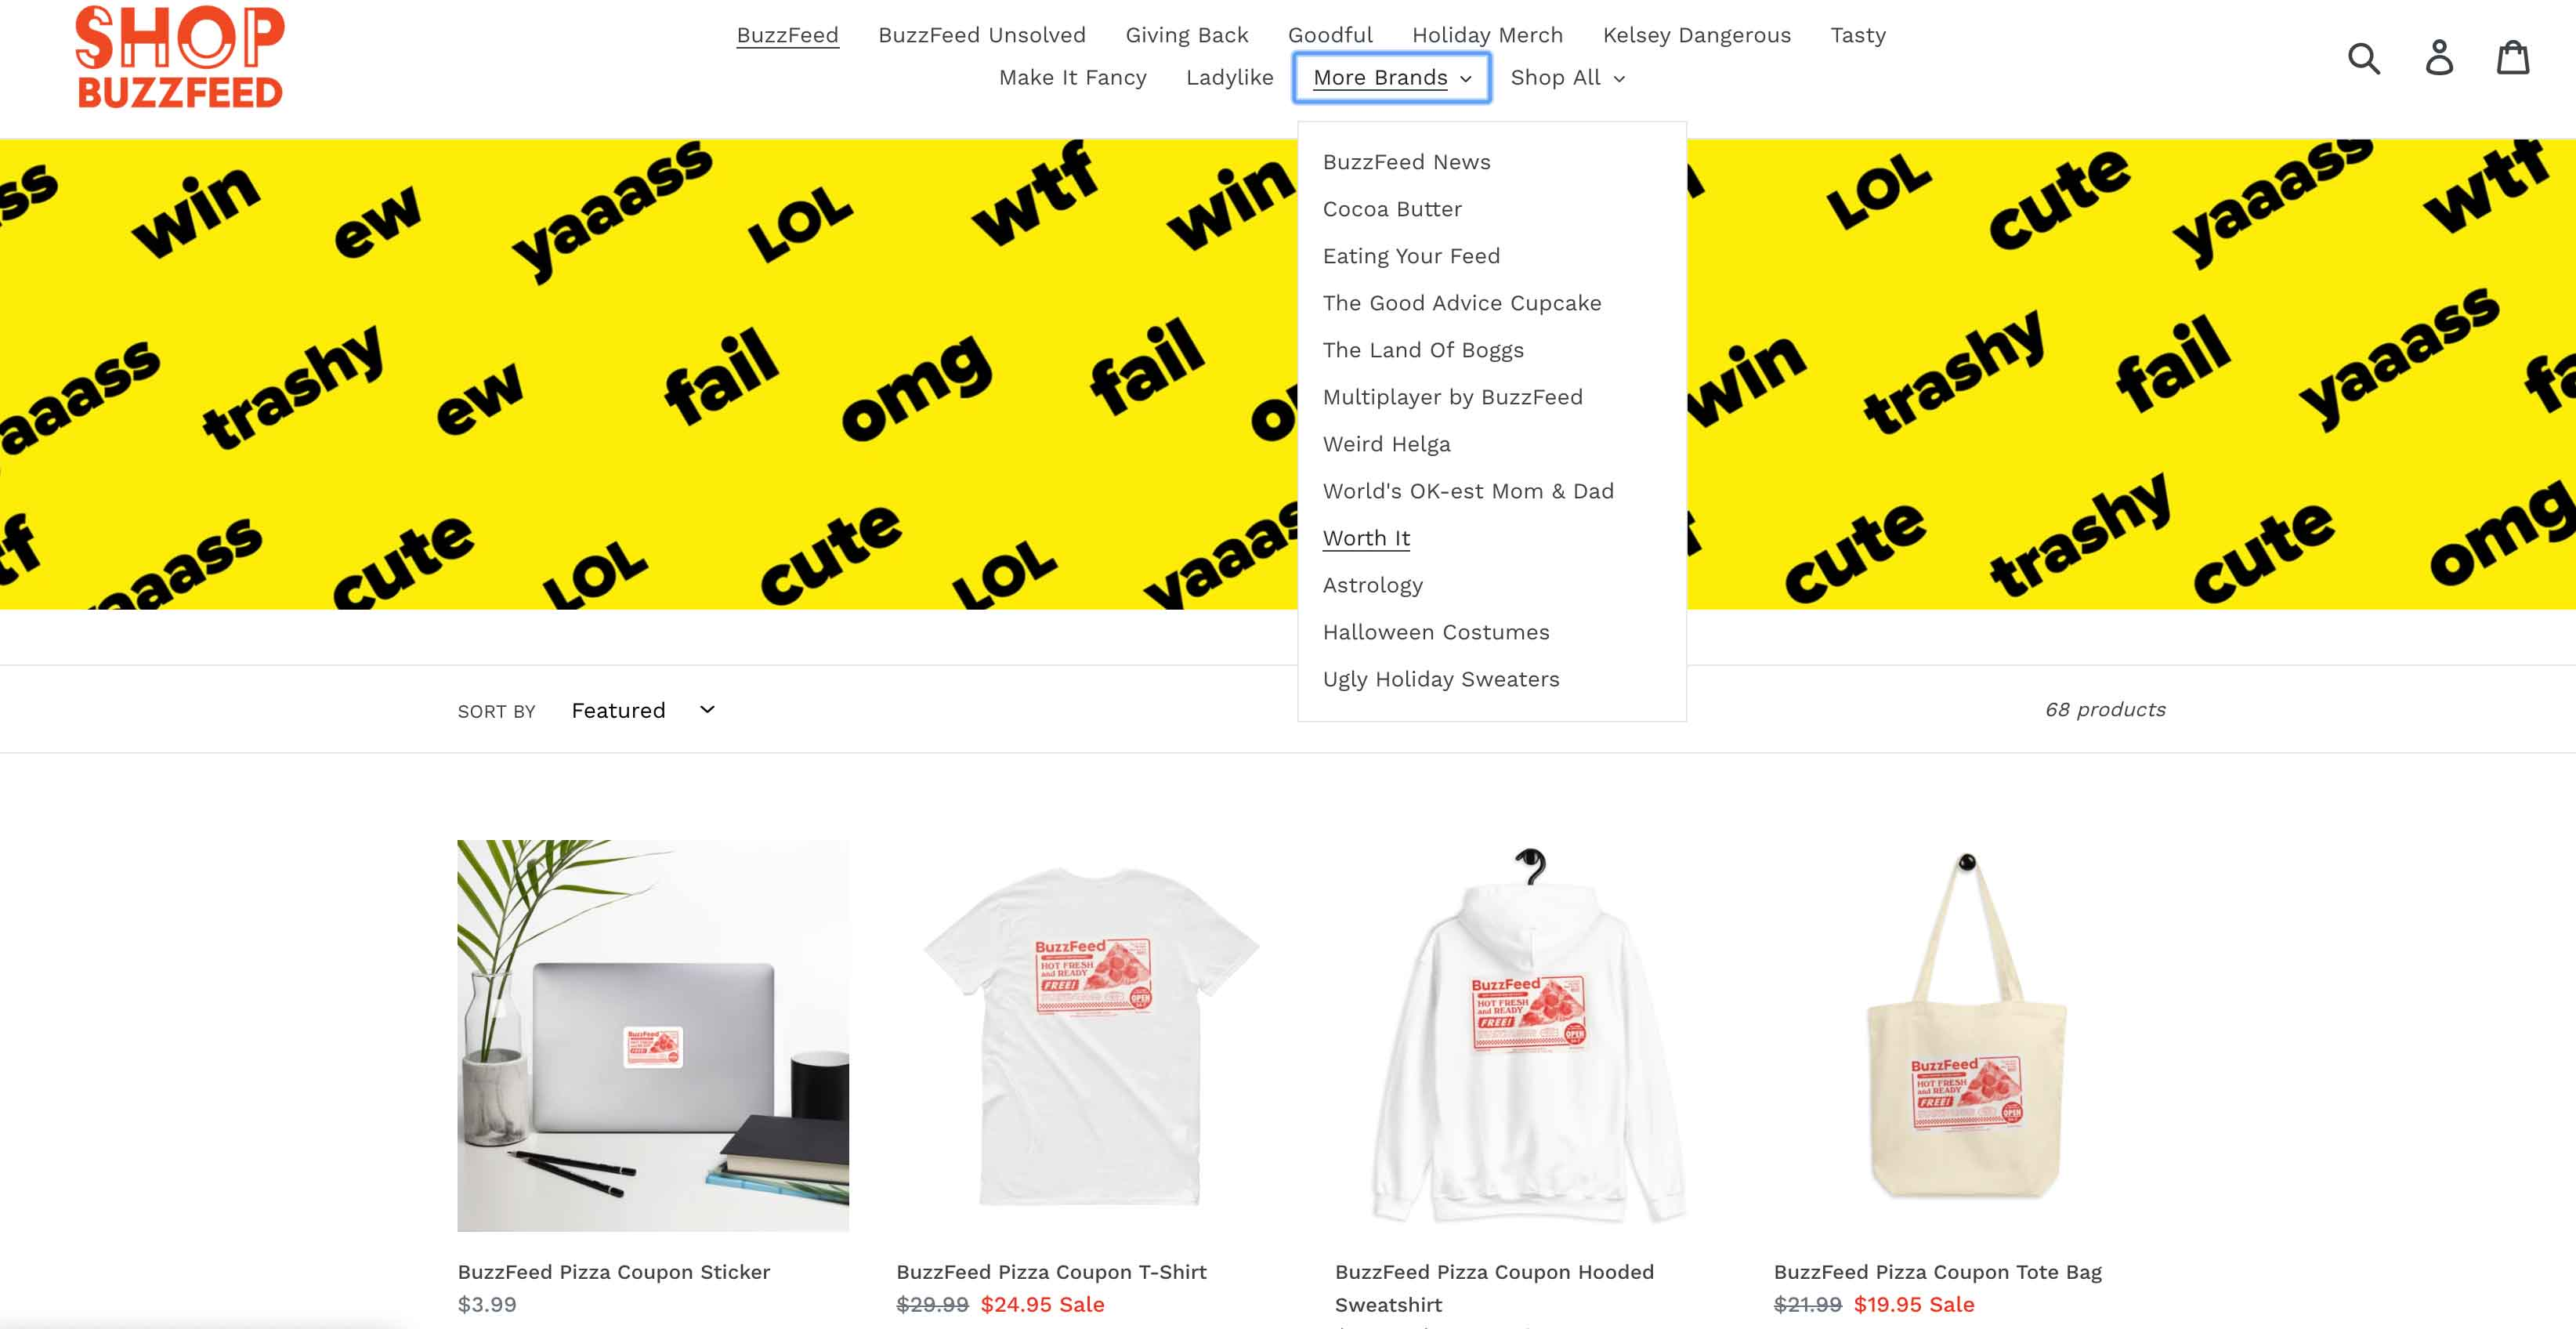 Digital Publishing Strategy: Buzzfeed has its own online shop